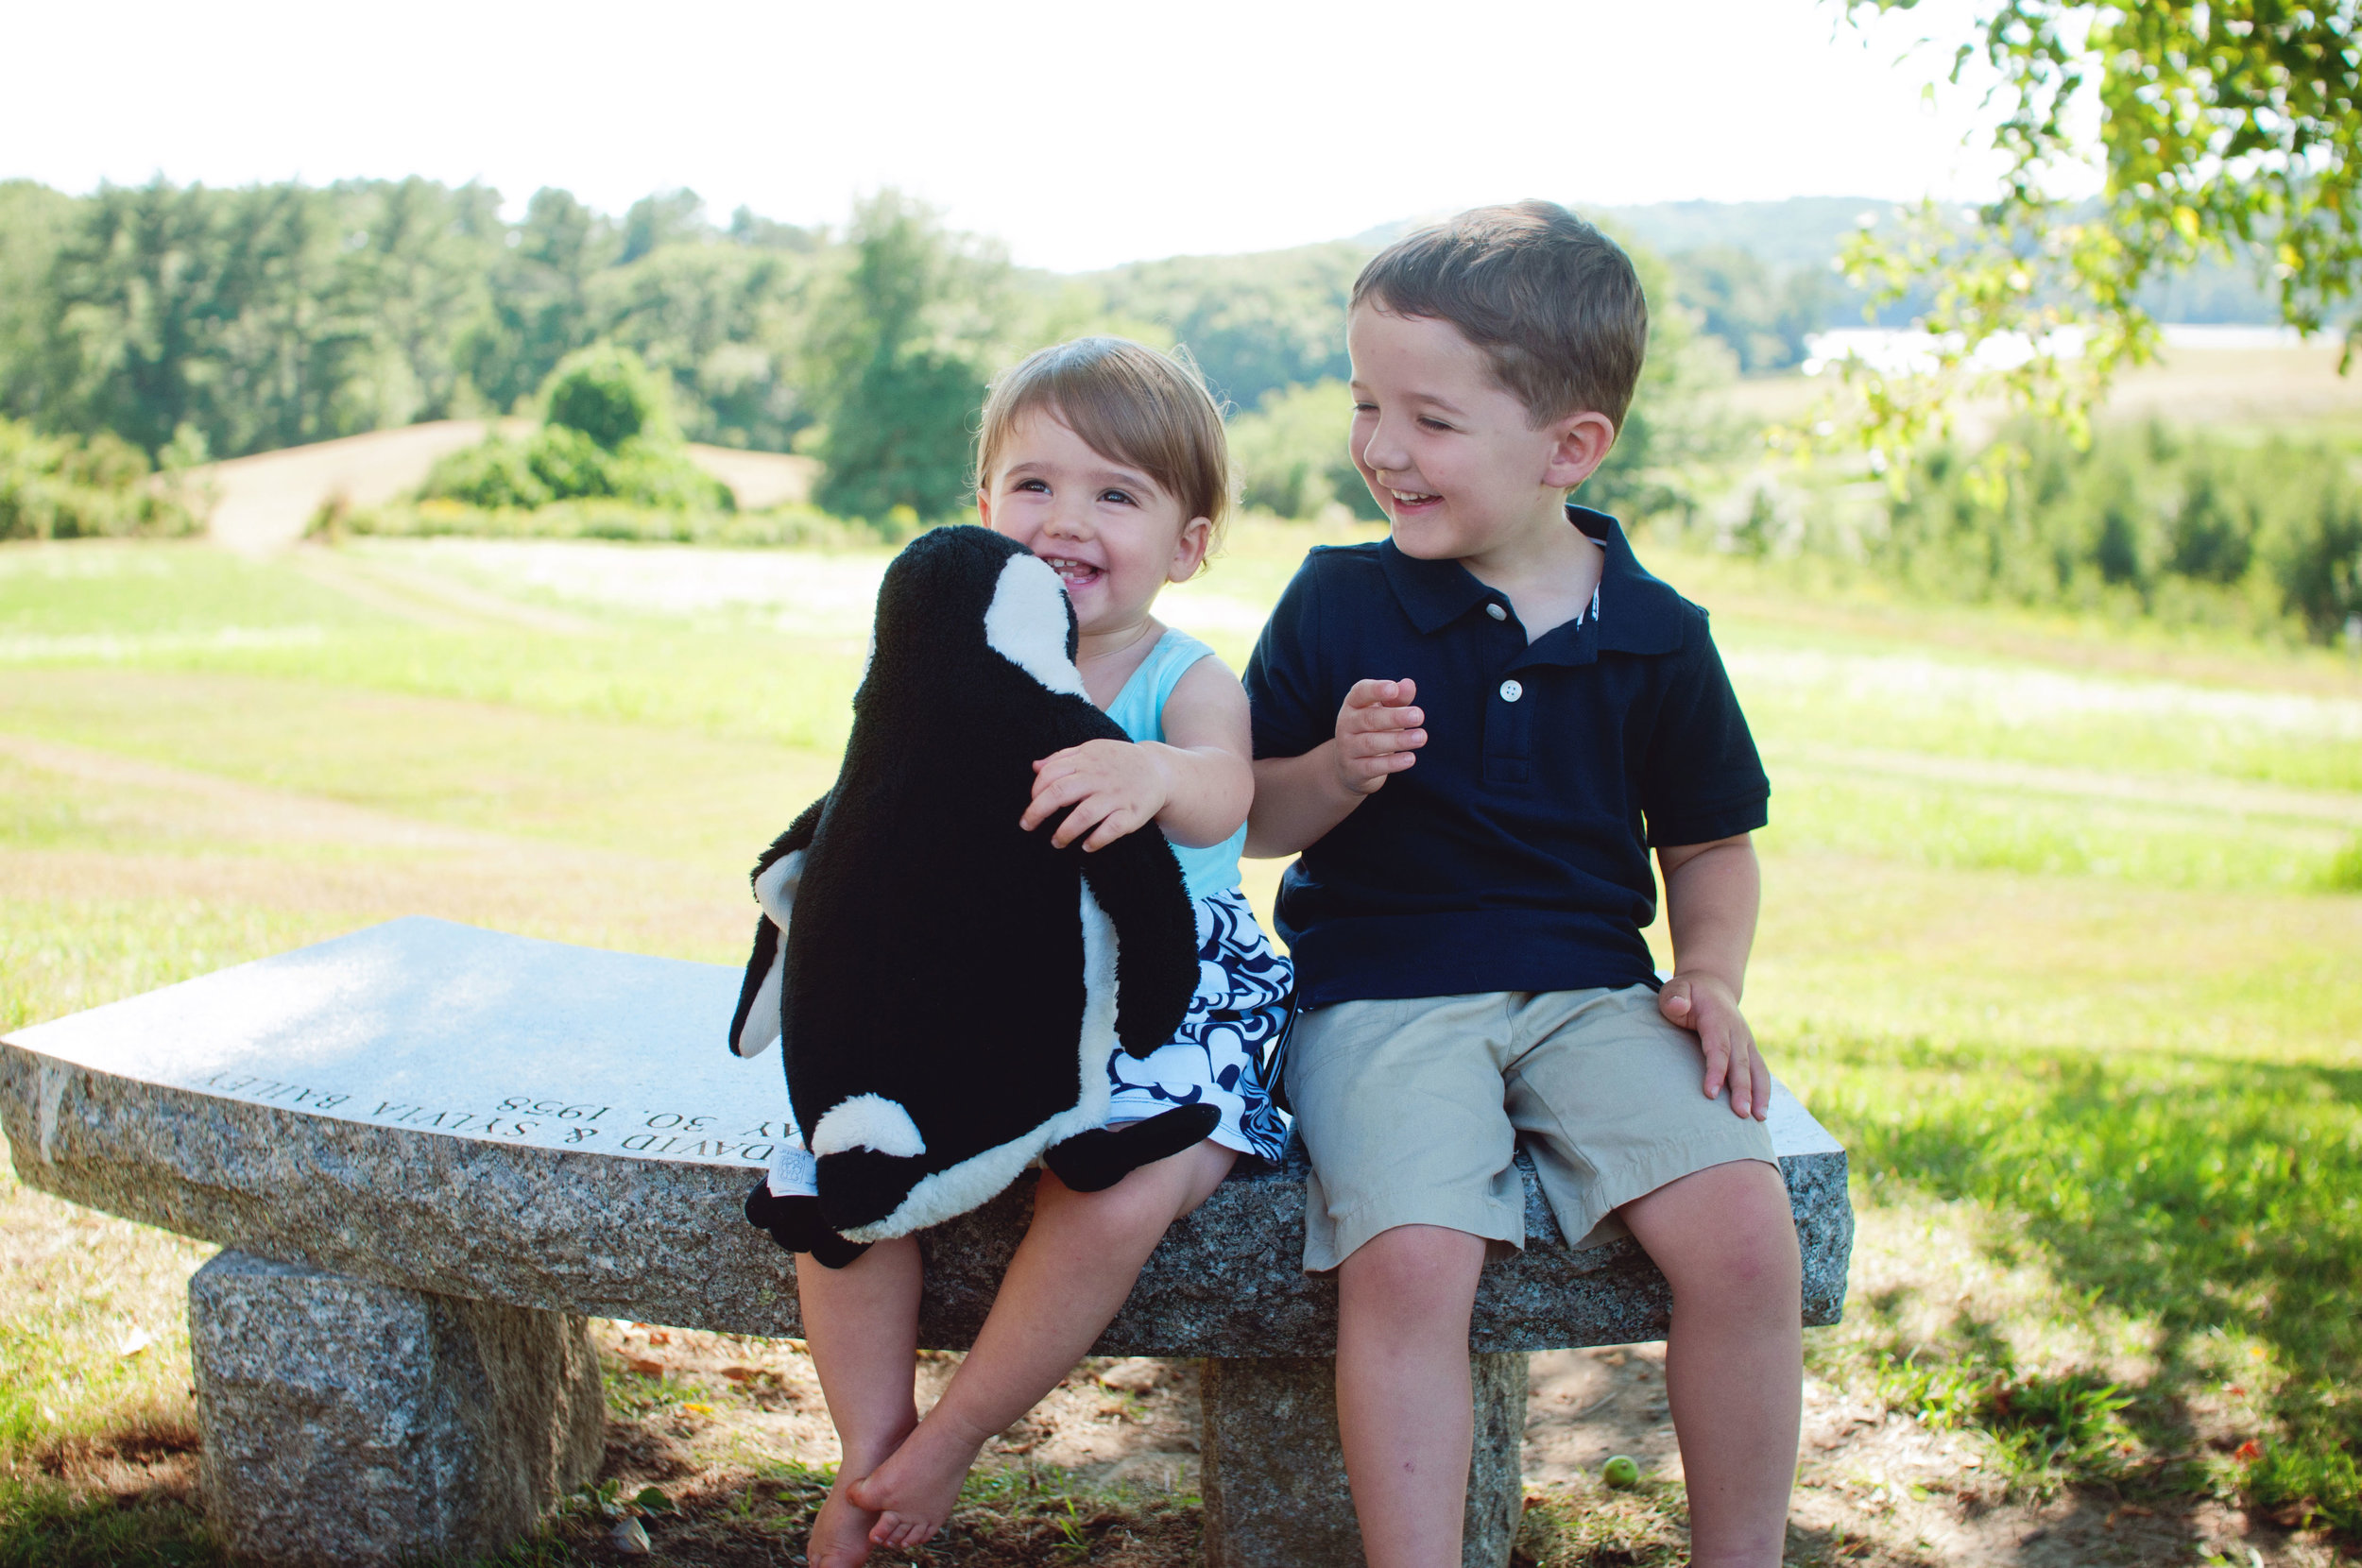 two young children sitting on bench laughing